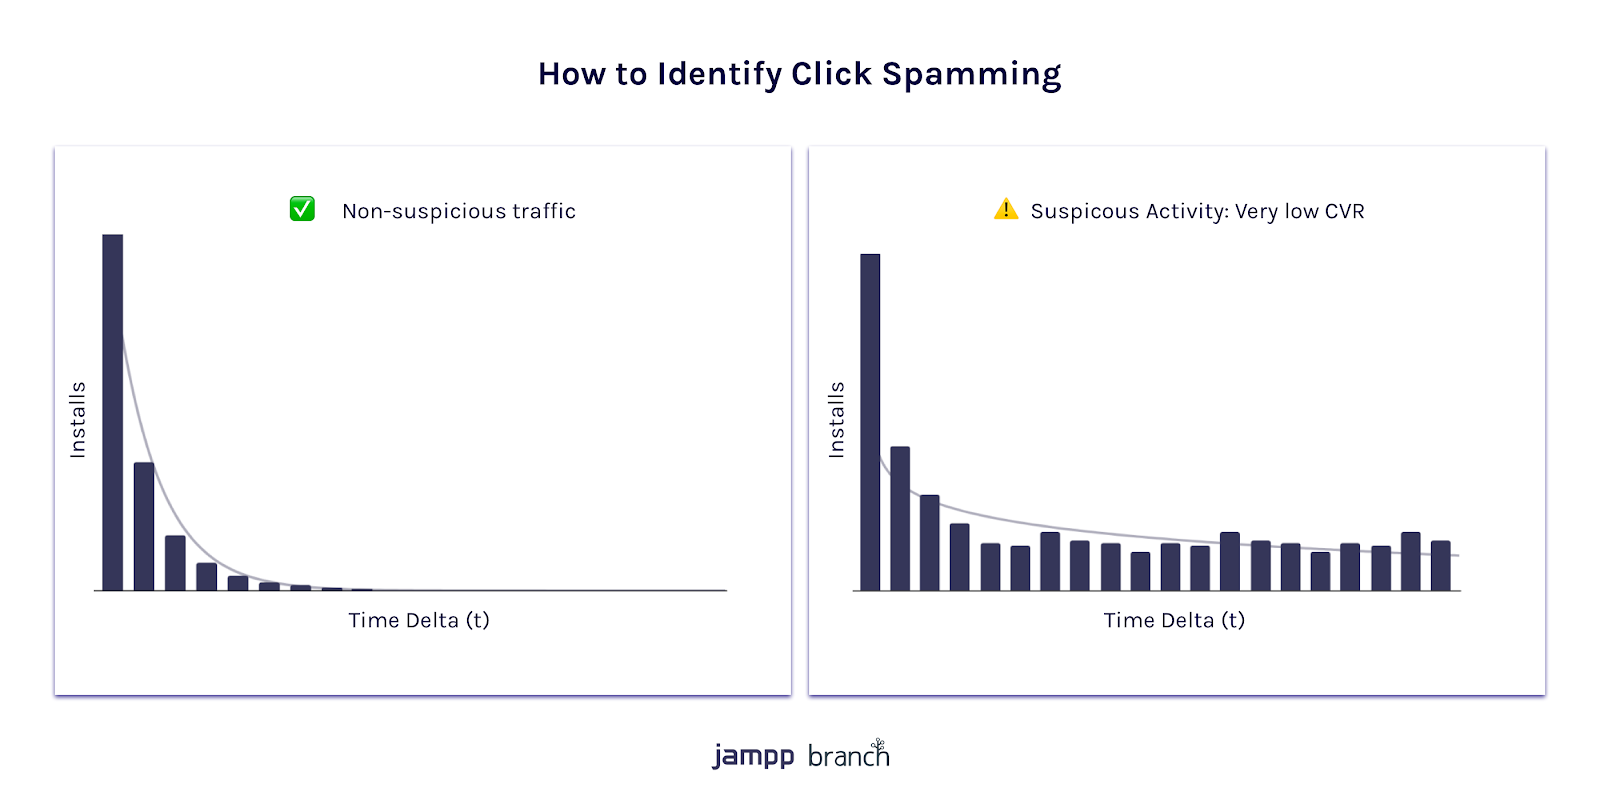 Charts on how to identify click spamming